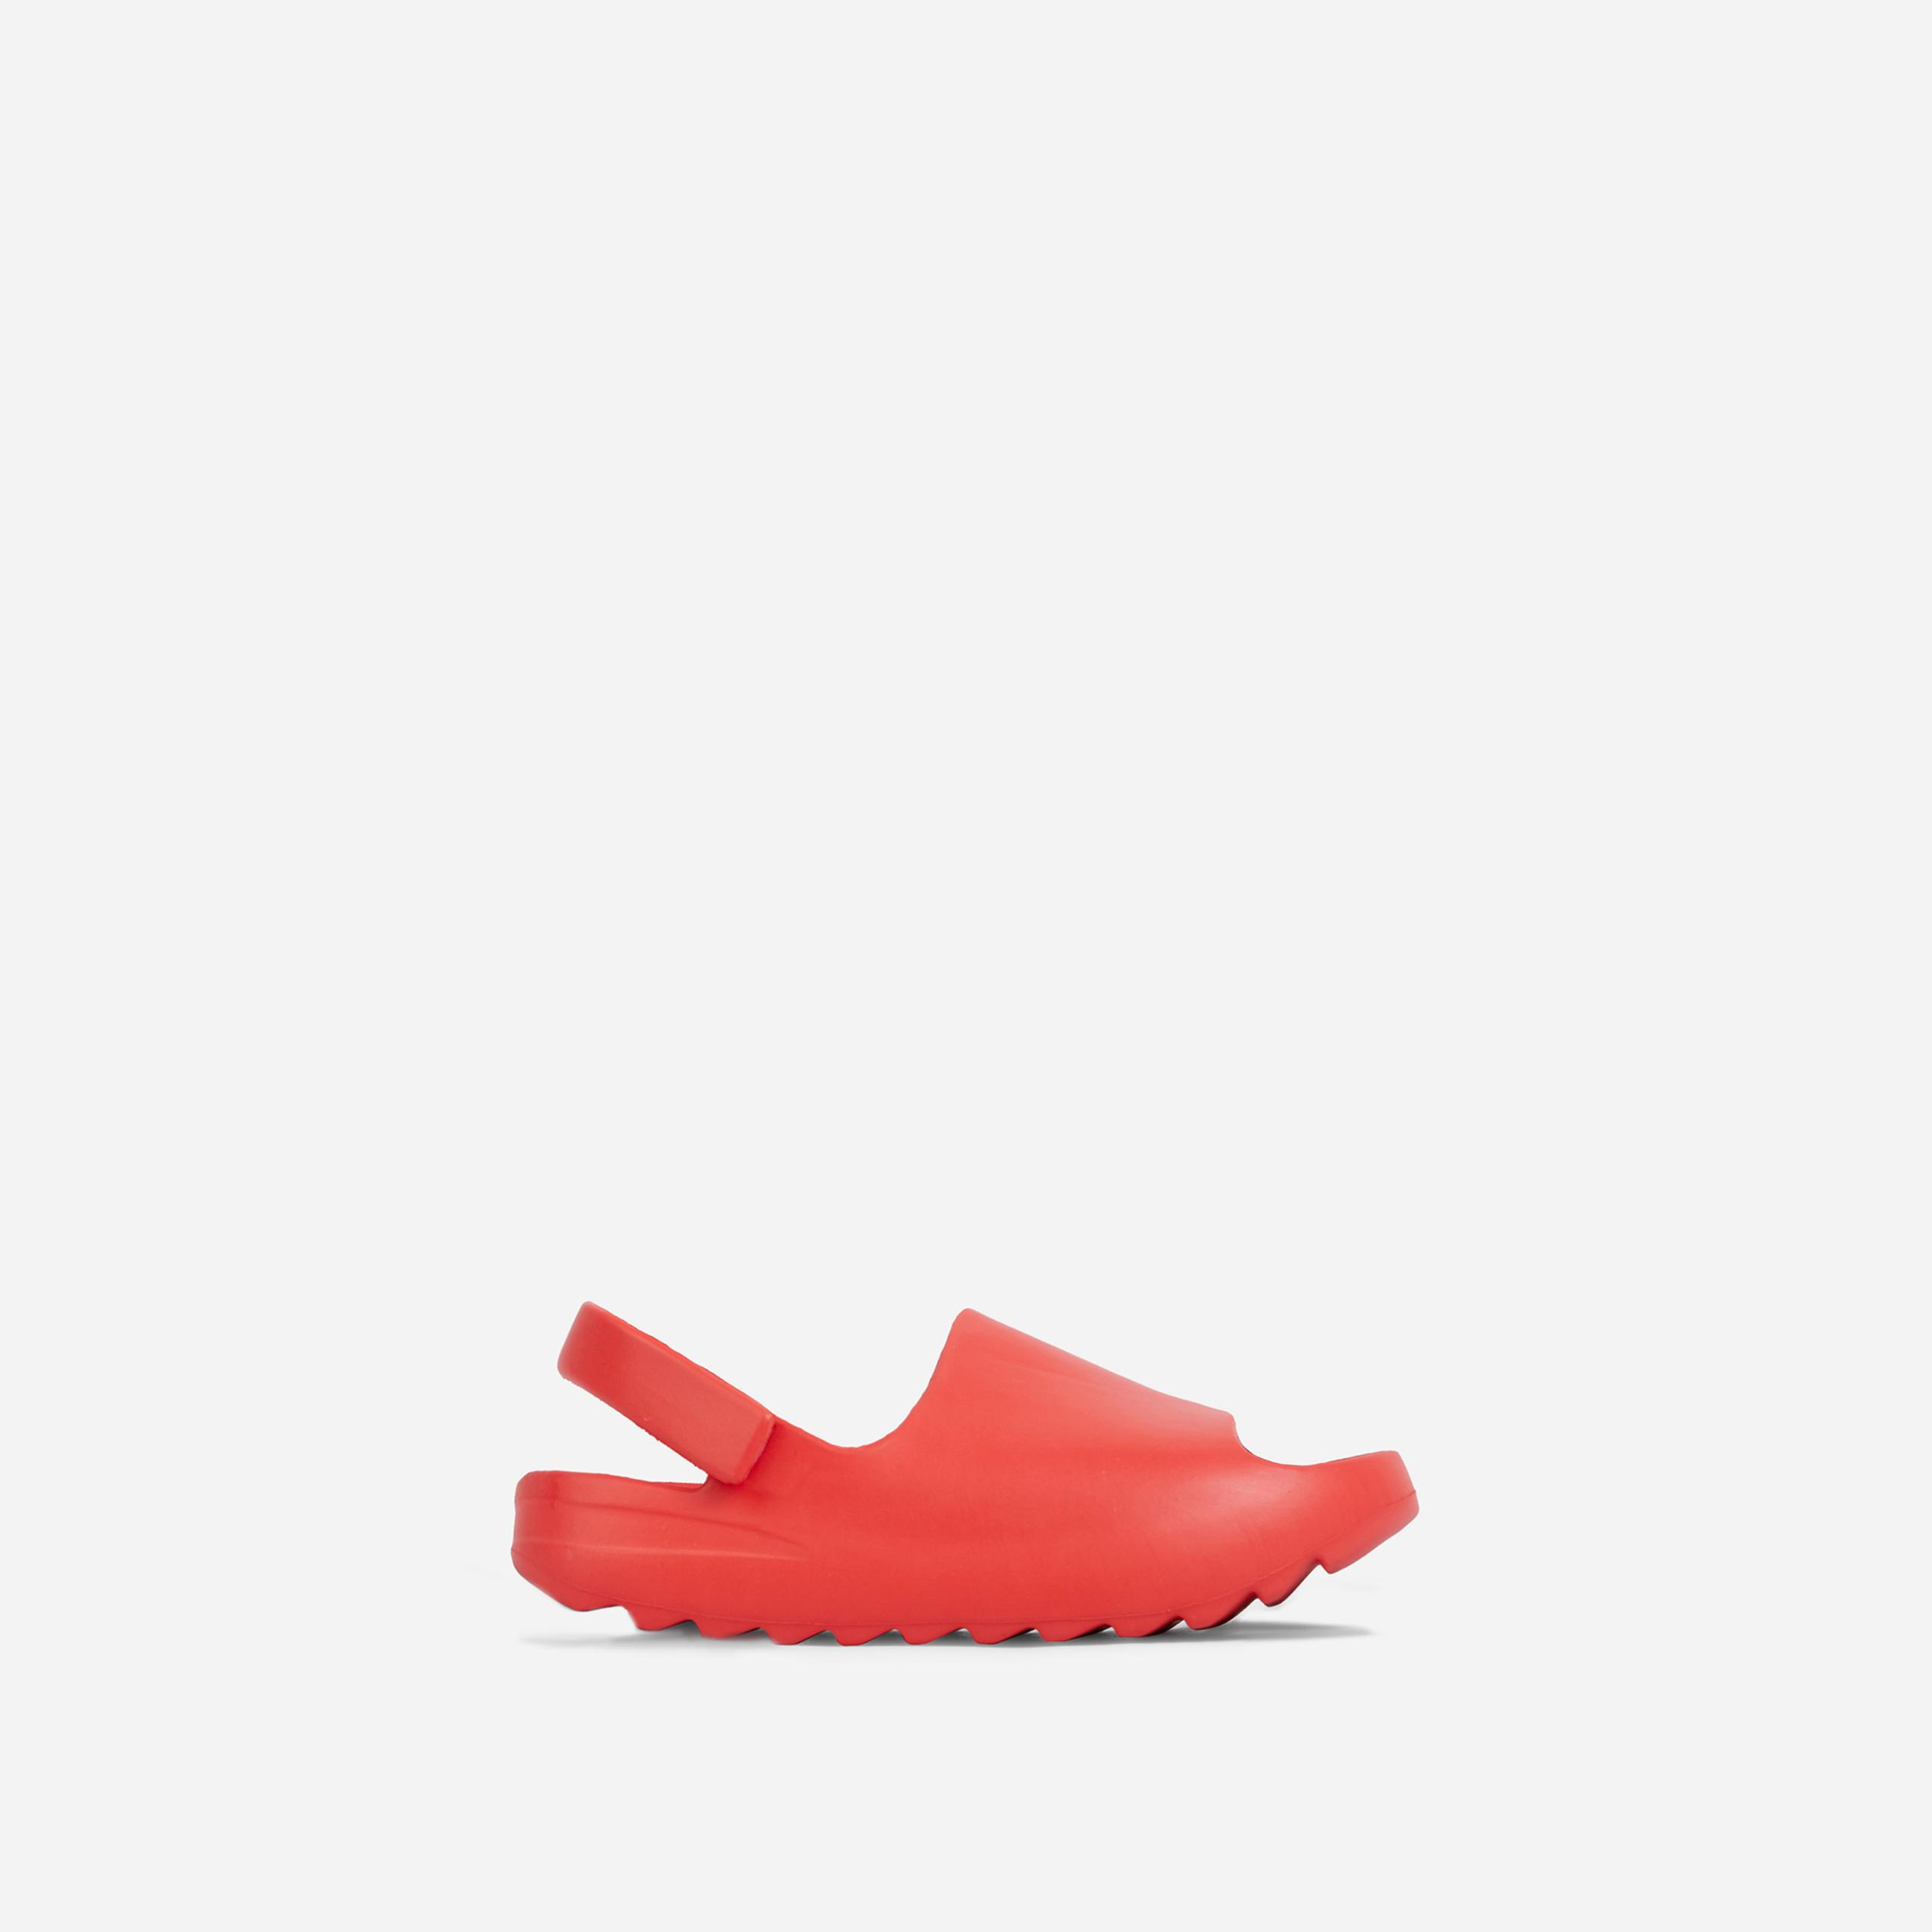 Kickoff Kid's Flat Sandal In Red Rubber, Red